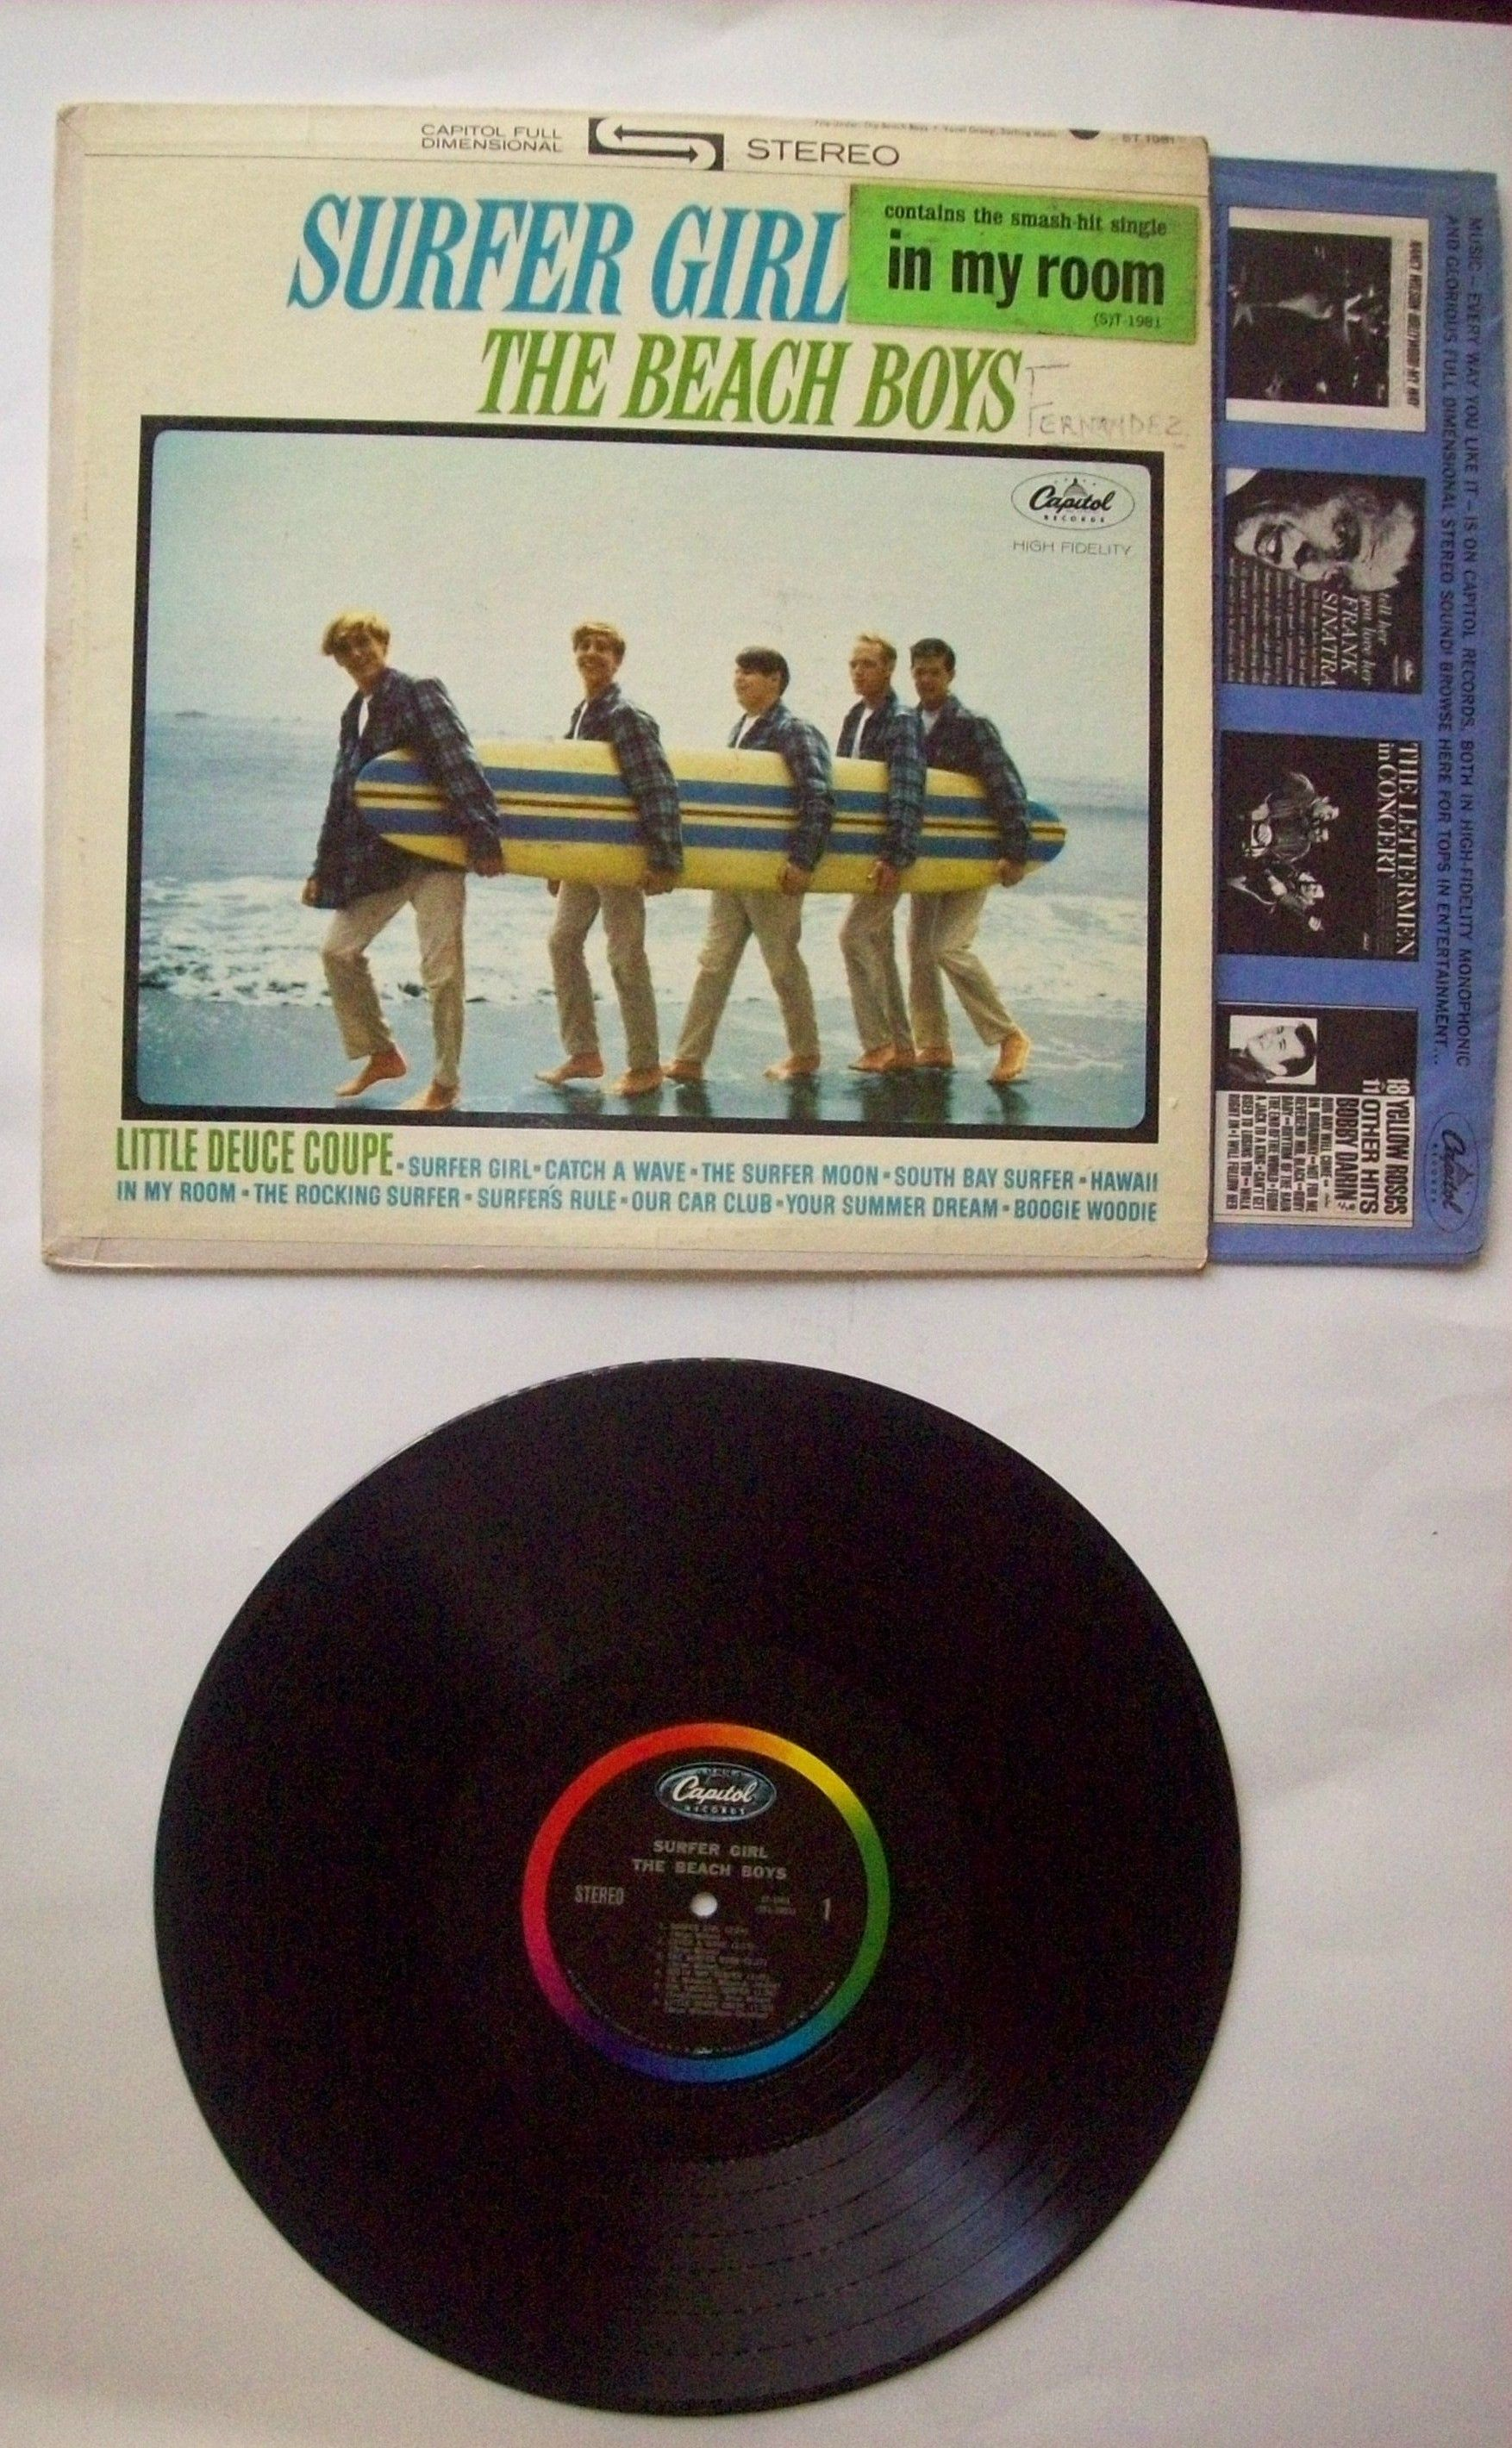 Capitol Records First Edition First Press The Beach Boys Surfer Girl Vinyl Lp Beach Boys Surfer Girl The Beach Boys Vintage Vinyl Records